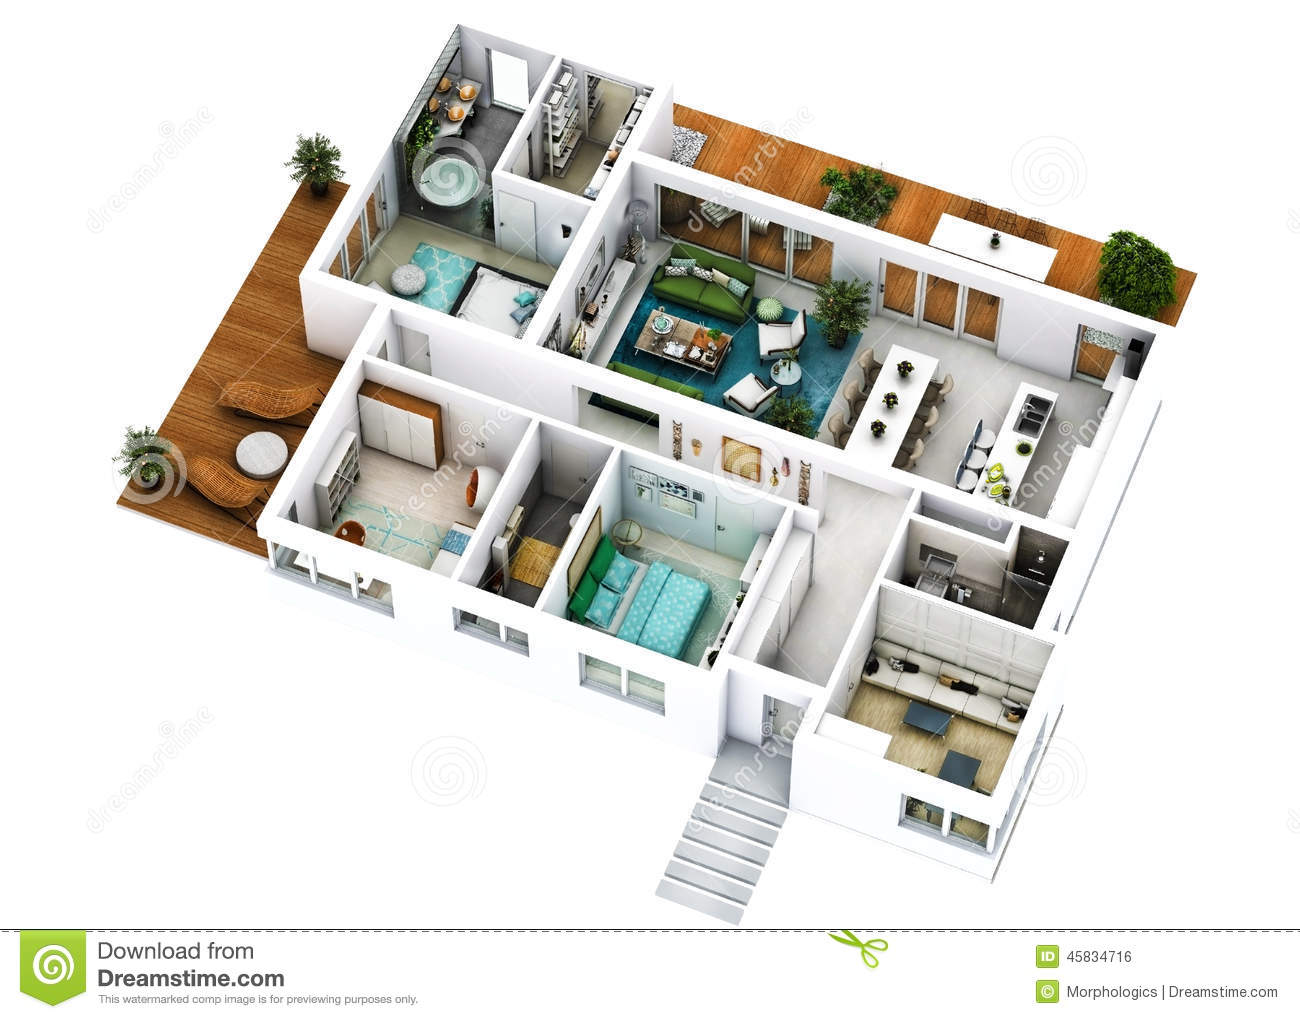 Big house plans 3d images galleries for Plan 3d de maison